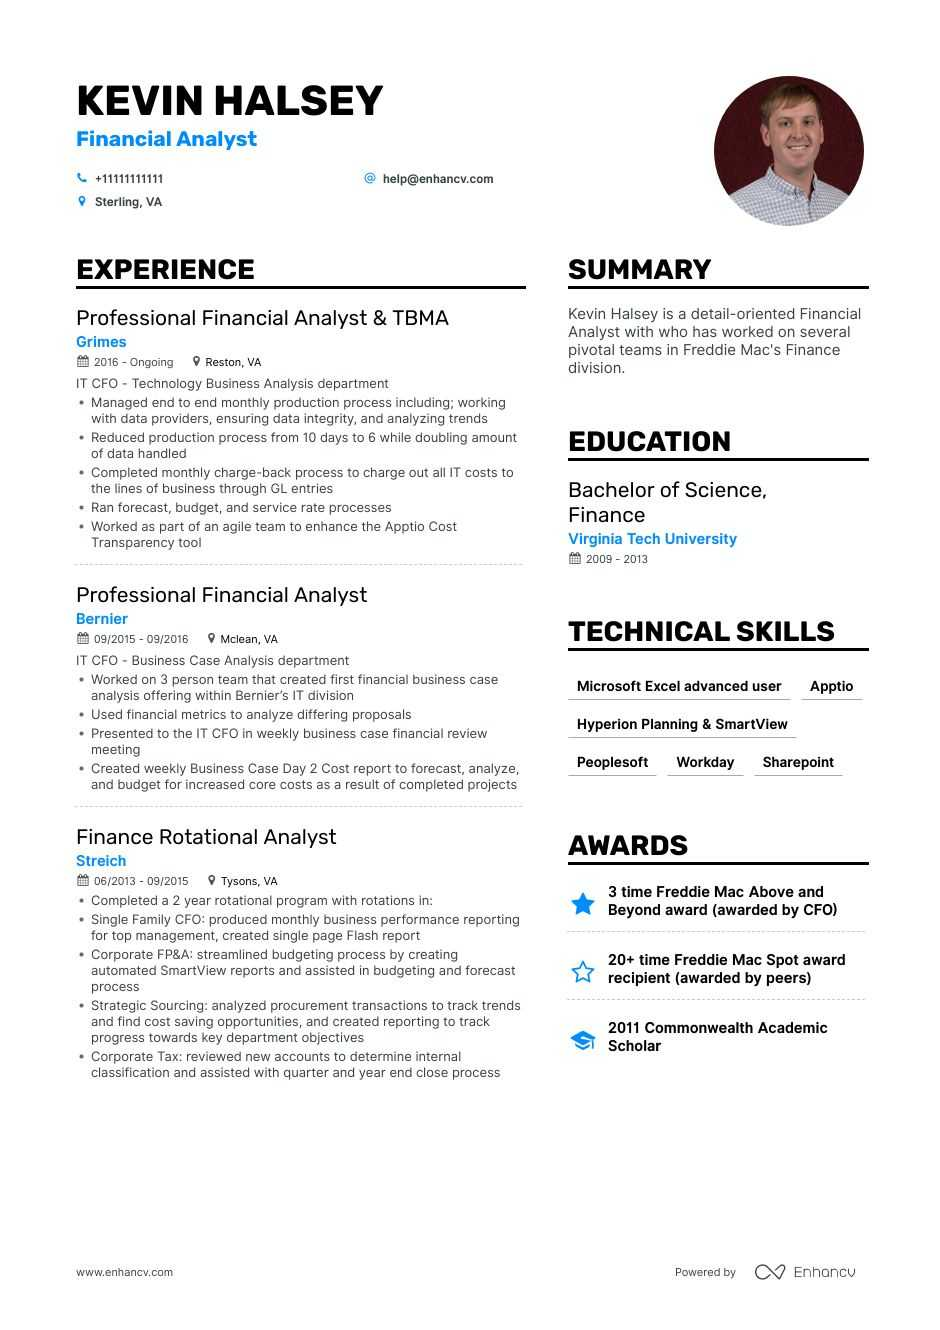 financial analyst resume example for enhancv rotational program effective title examples Resume Rotational Program Resume